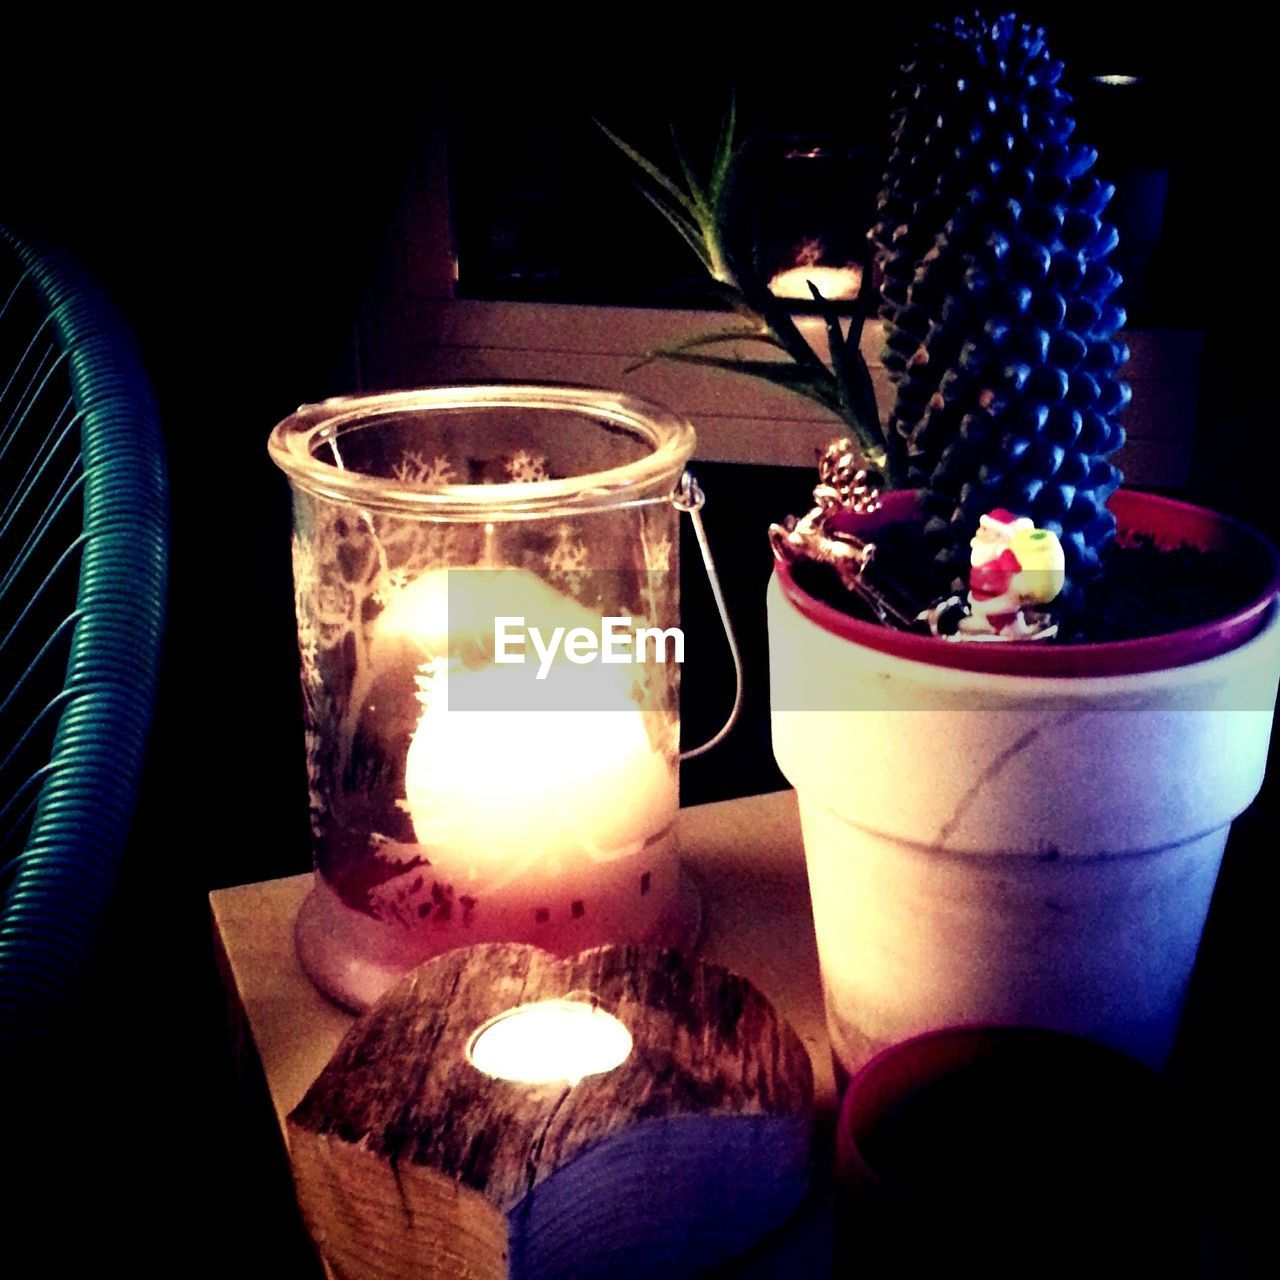 candle, flame, indoors, table, burning, illuminated, no people, night, close-up, heat - temperature